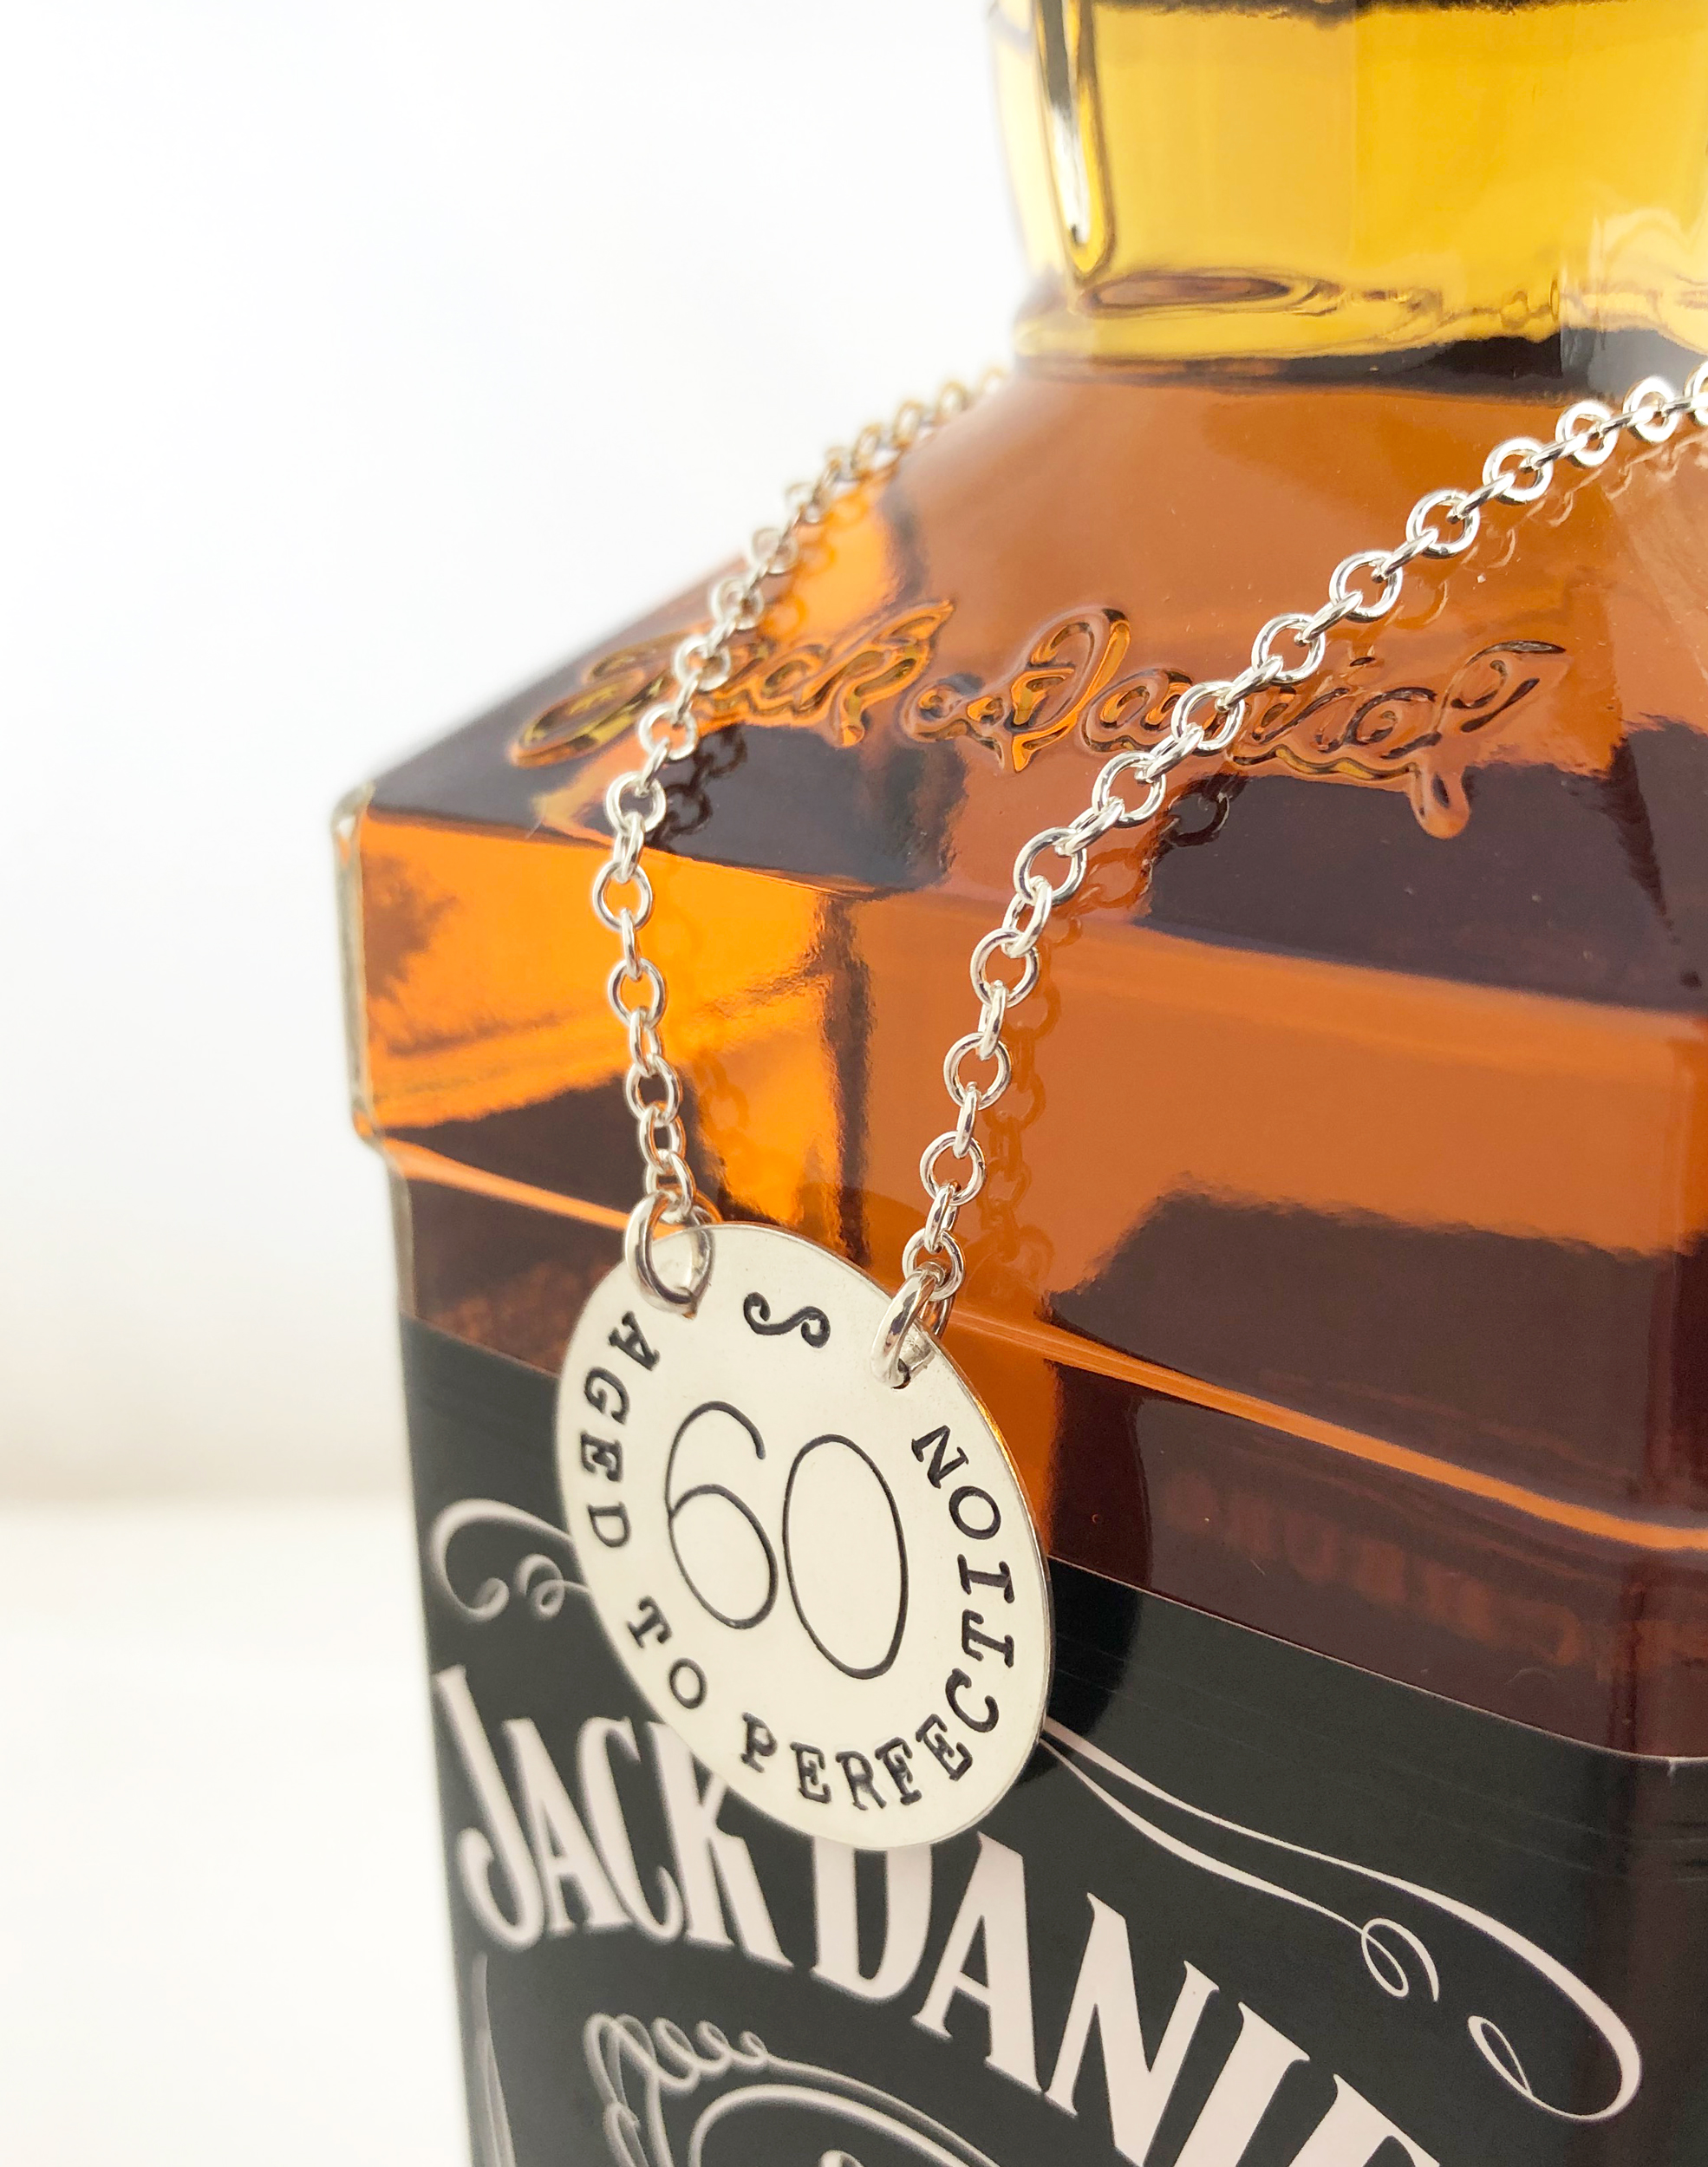 Personalized Decanter Label or Bottle Tag